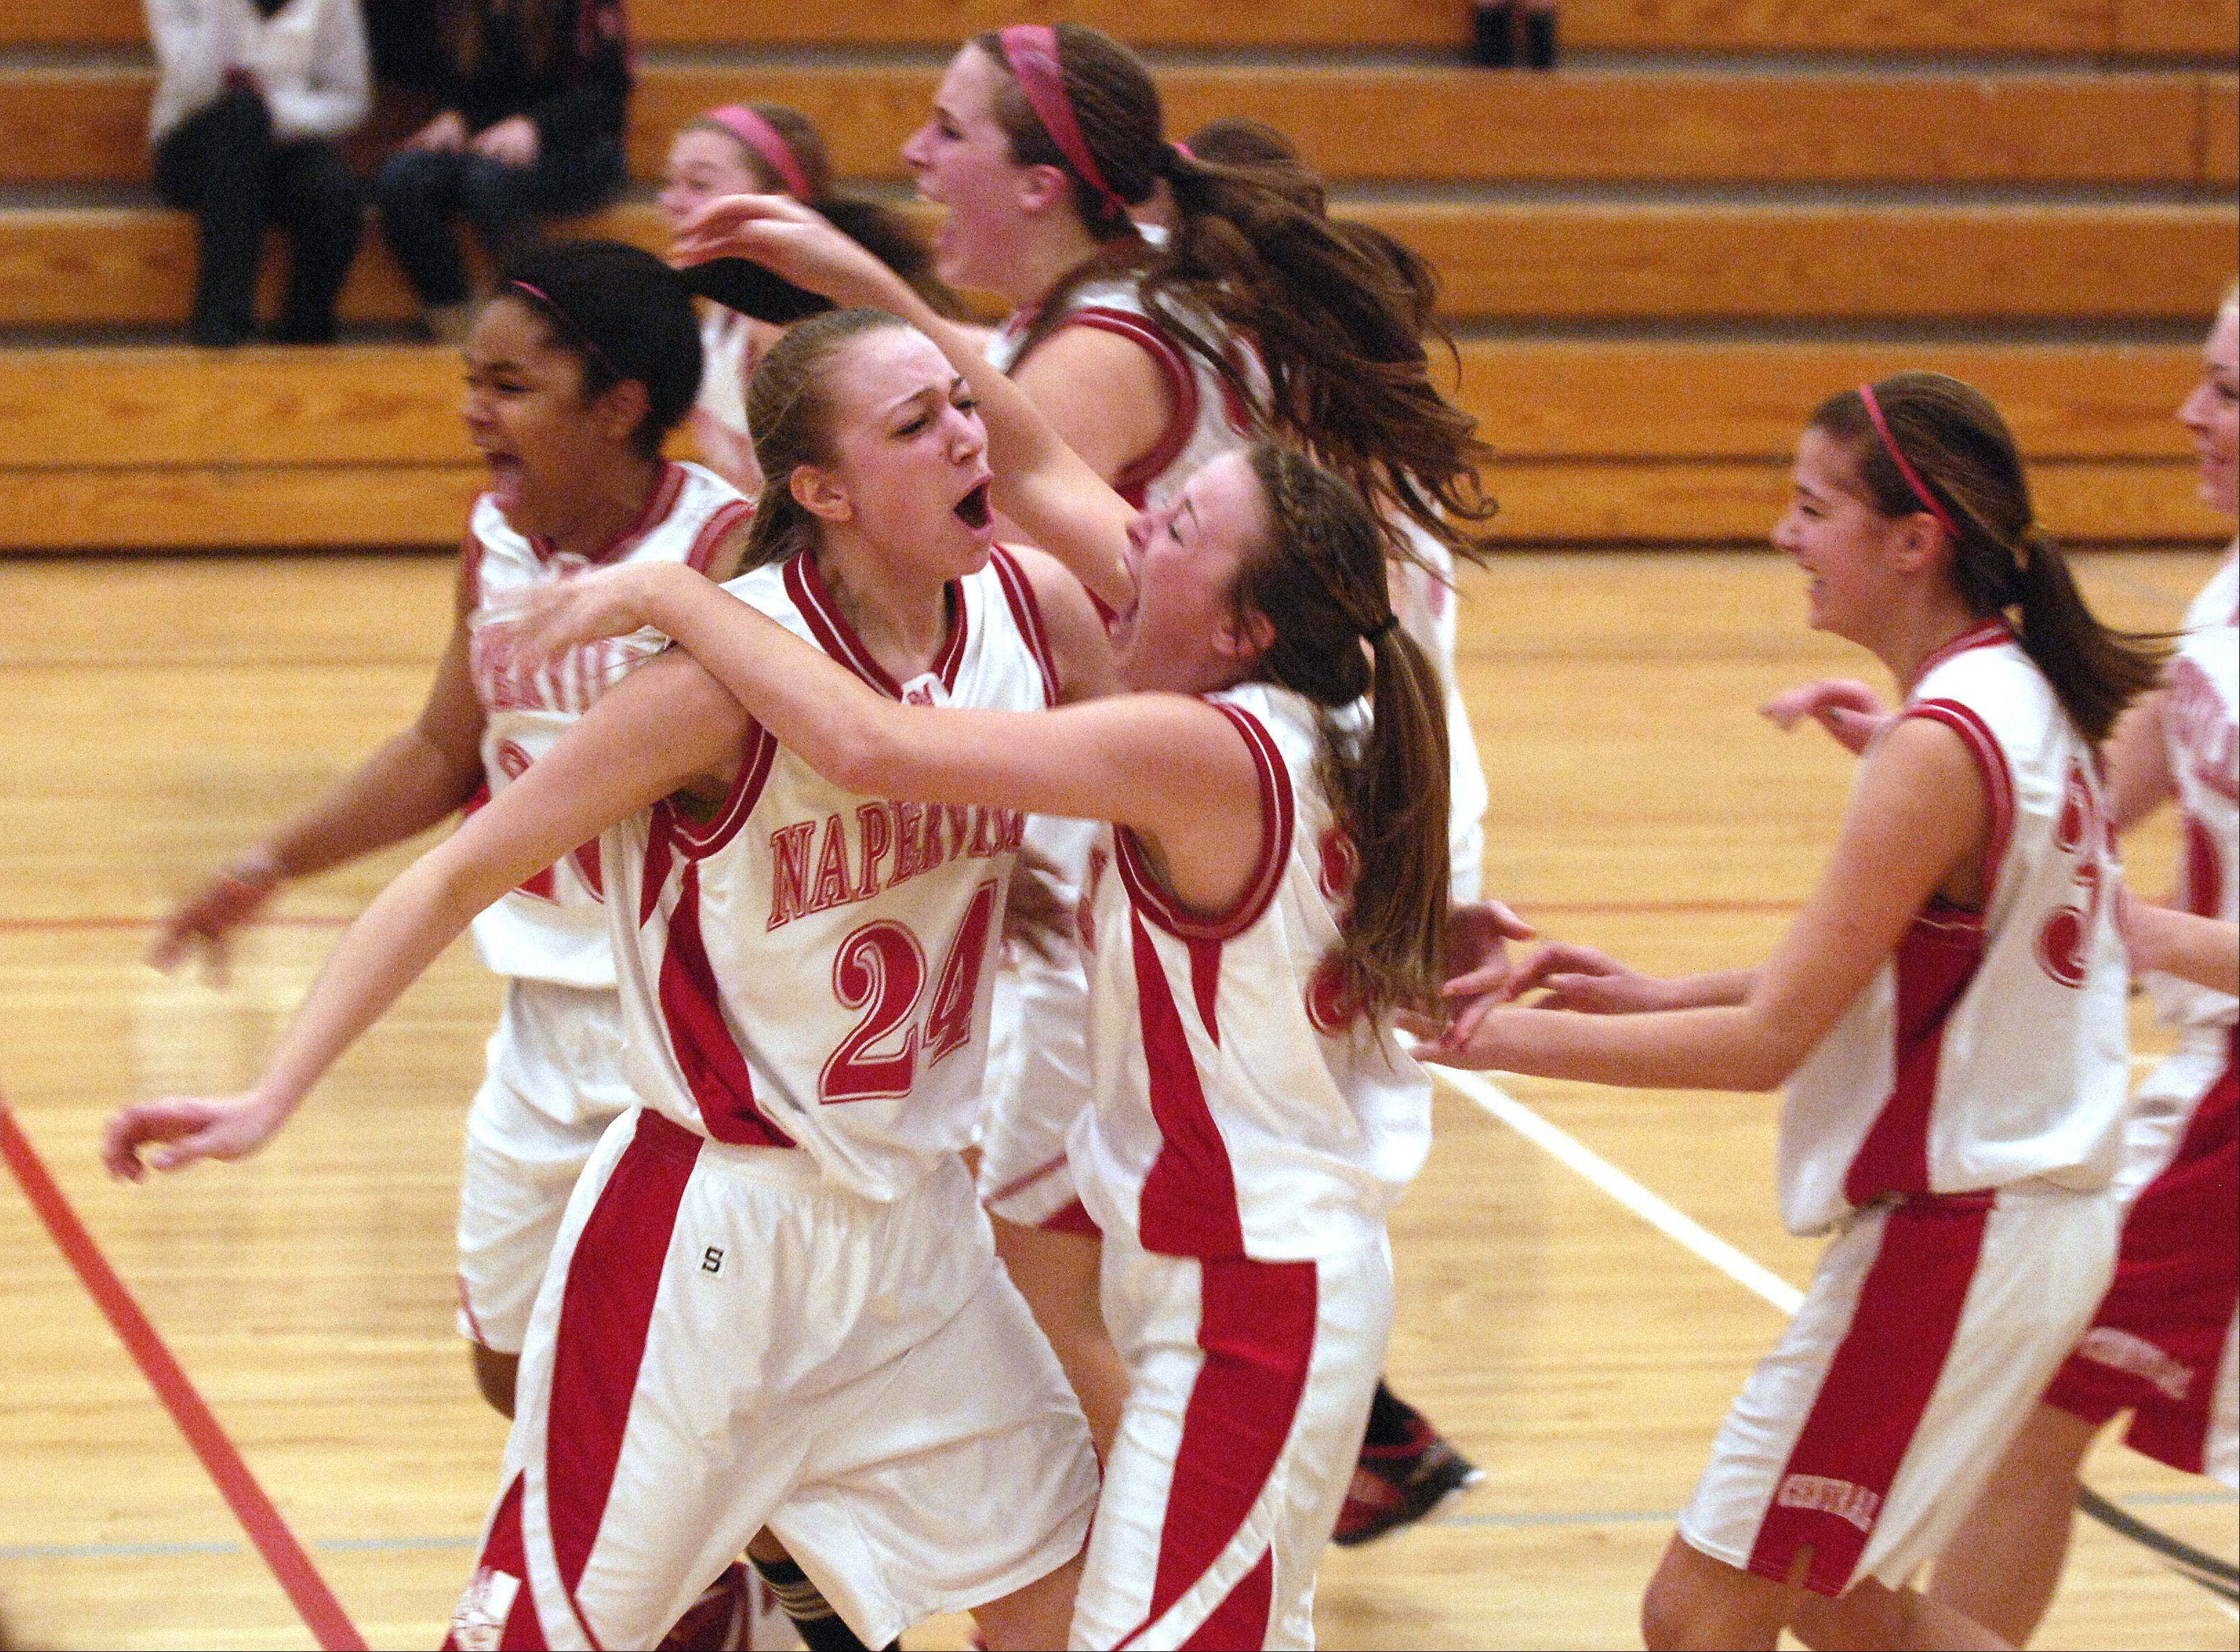 Naperville Central celebrates their Class 4A regional final win over Benet Thursday in Lisle.